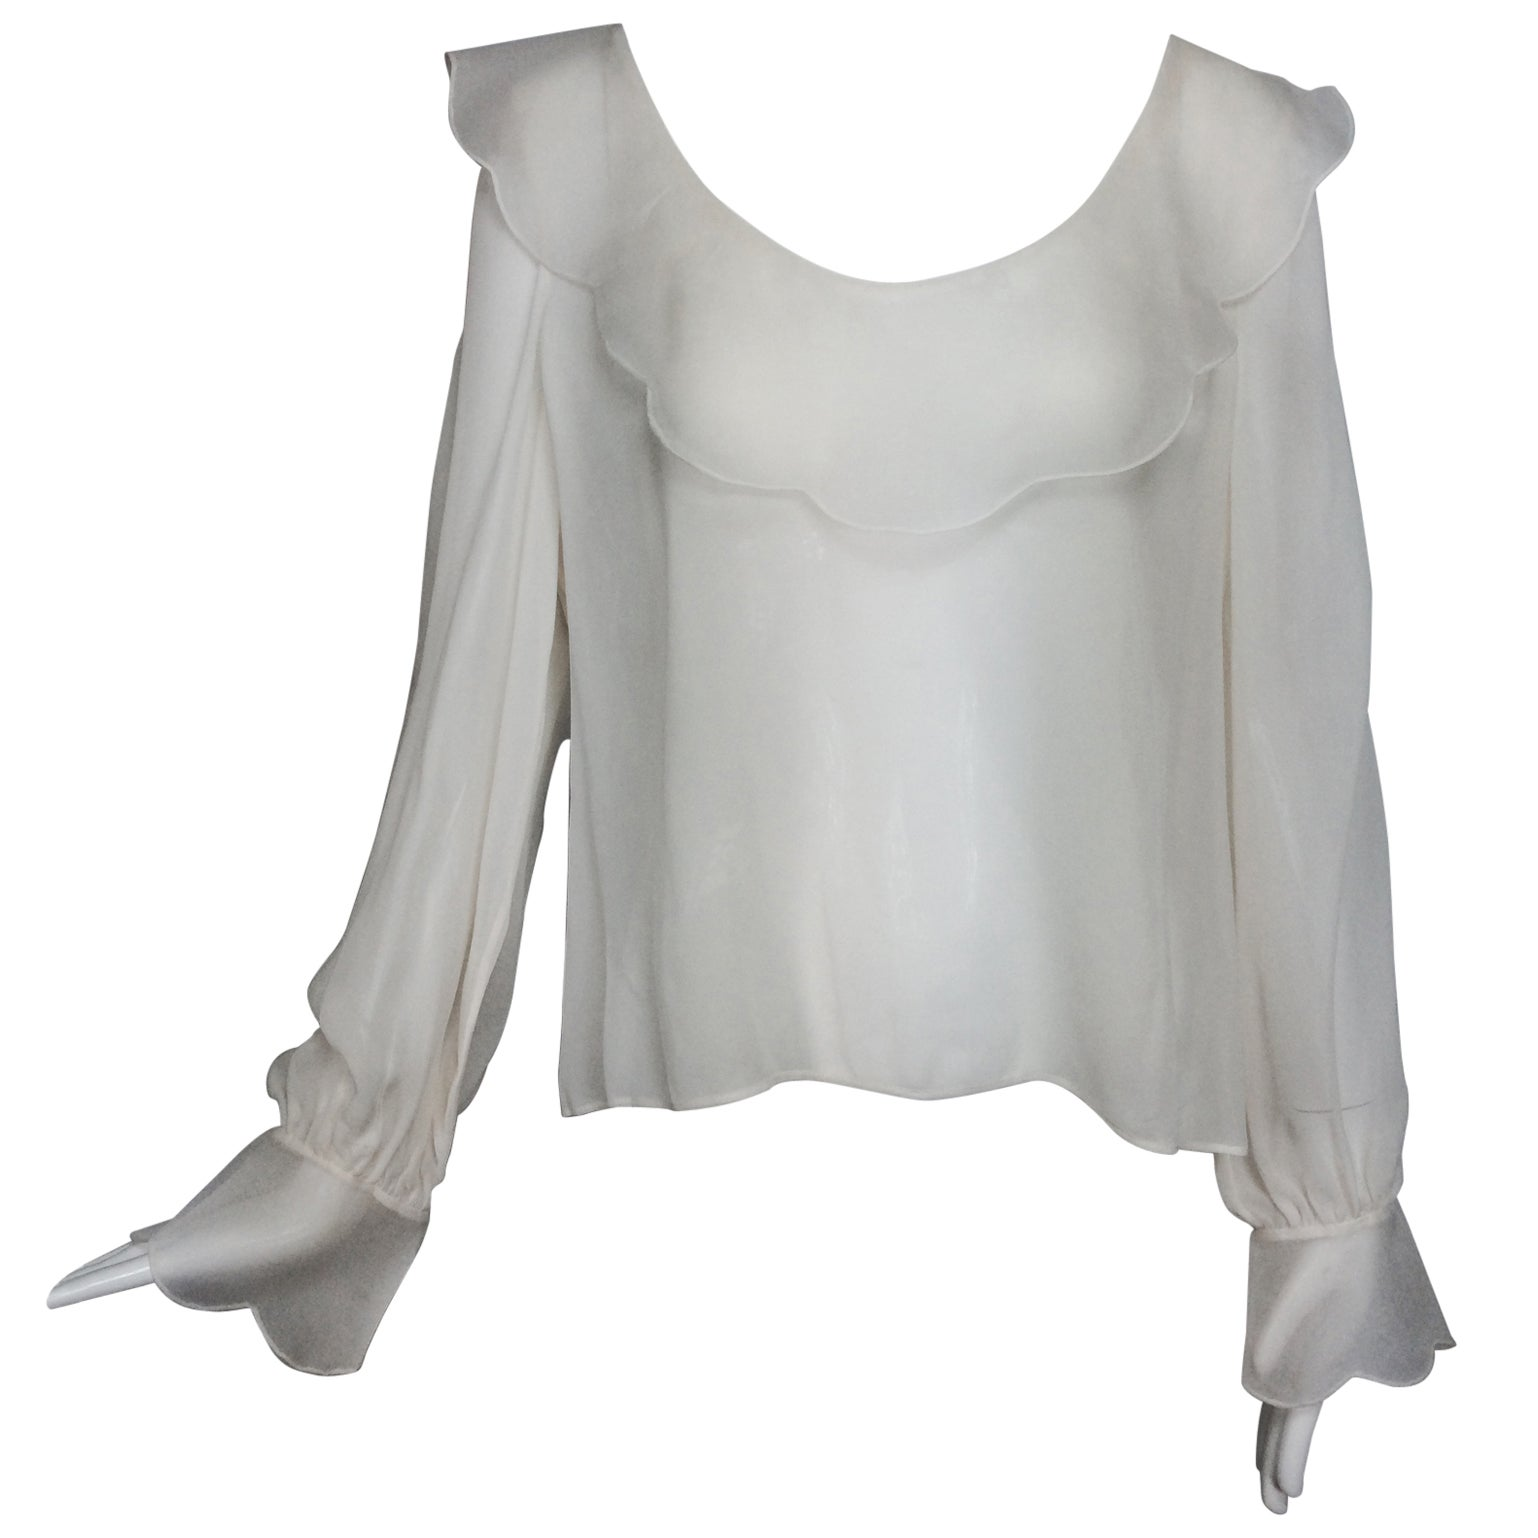 110d4dacb7269e Valentino off white silk chiffon poet blouse L For Sale at 1stdibs